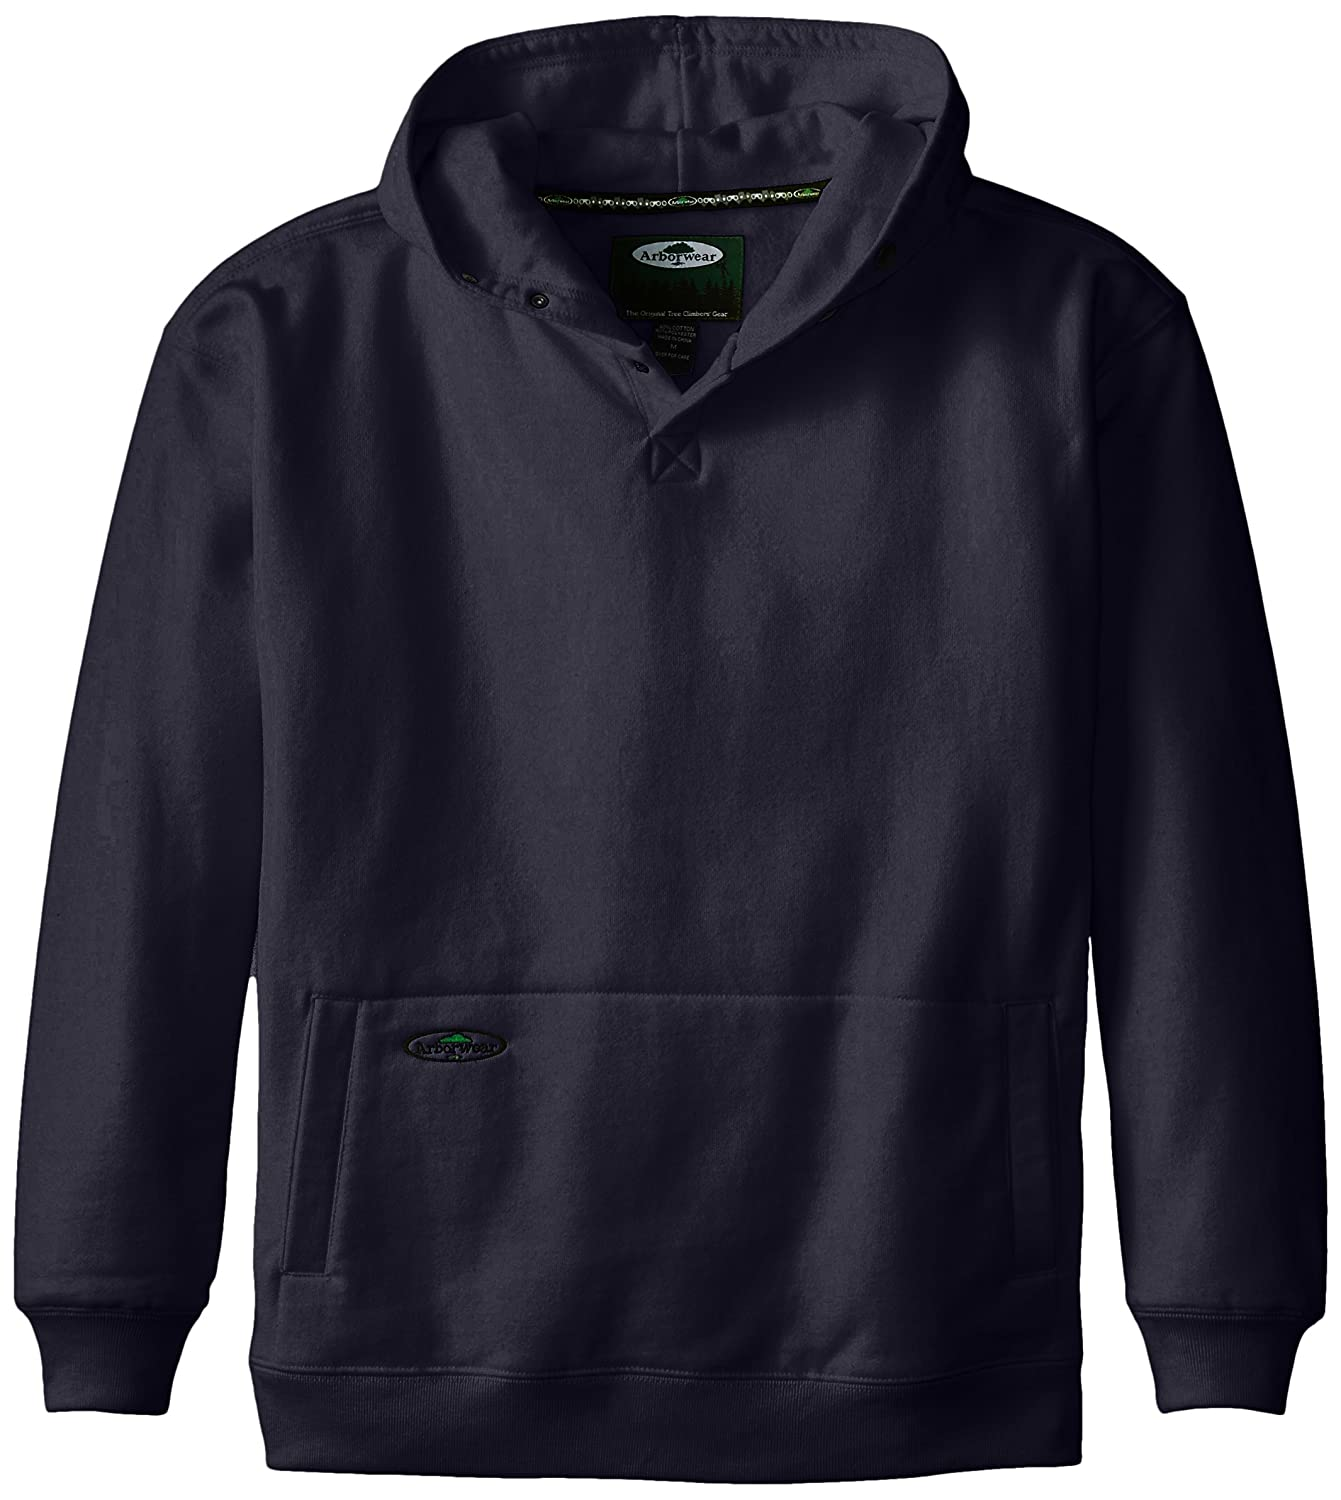 Arborwear Men's Double Thick Pullover Sweatshirt Arborwear Men's Apparel 400240